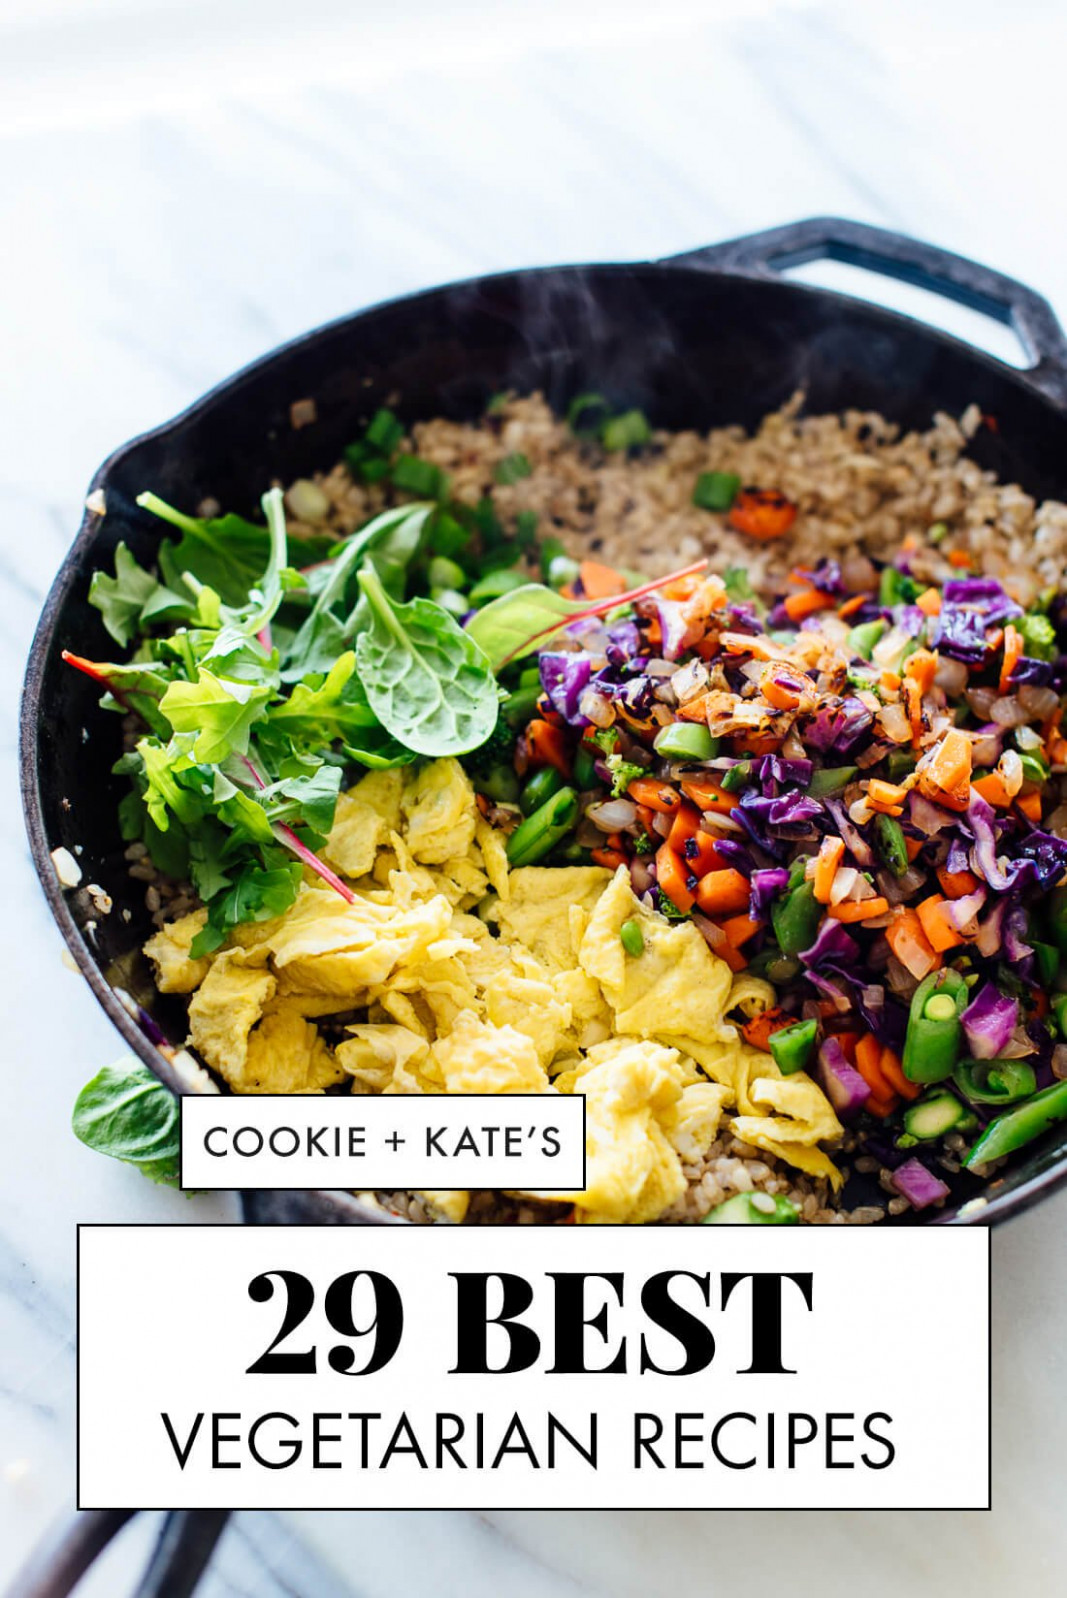 13 Best Vegetarian Recipes - Cookie and Kate - recipes in vegetarian